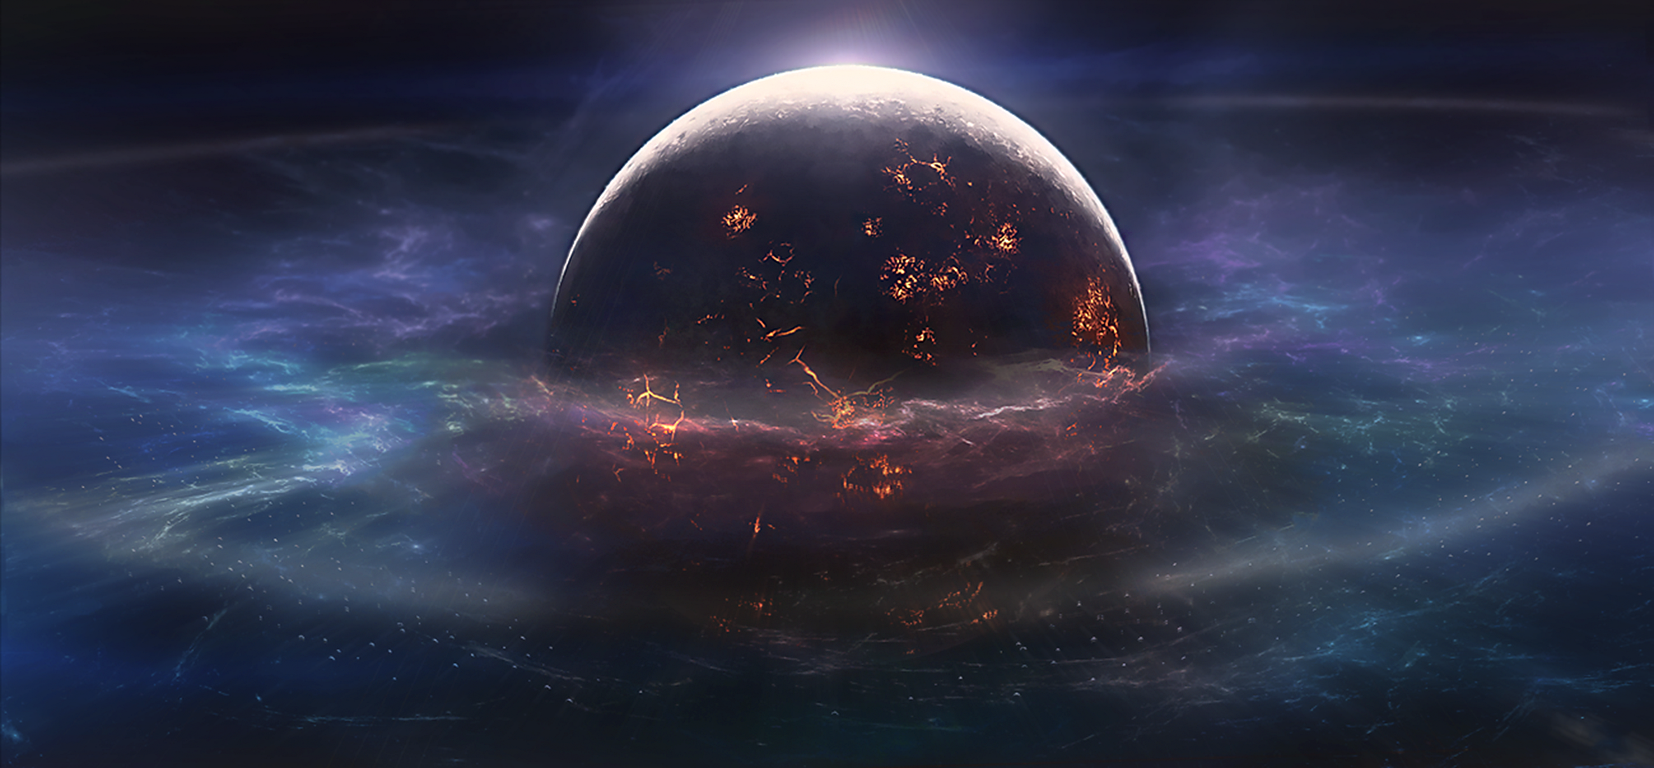 Sci Fi - Planet  Landscape Space Collision Wallpaper